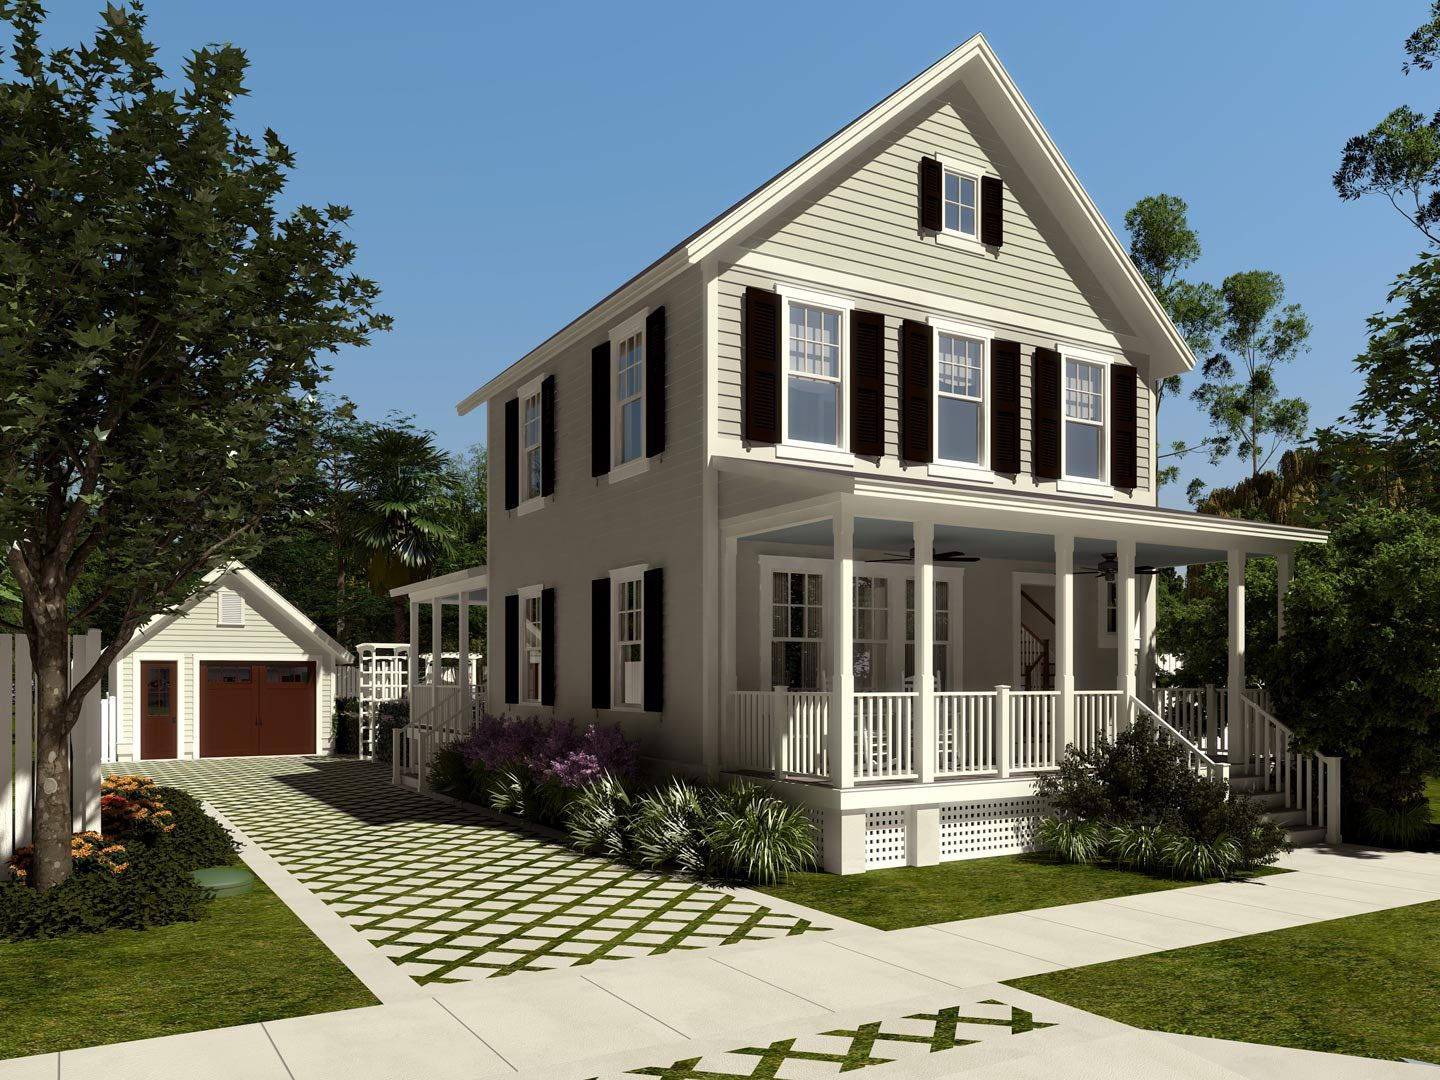 Old House Designs For New Construction Part 17